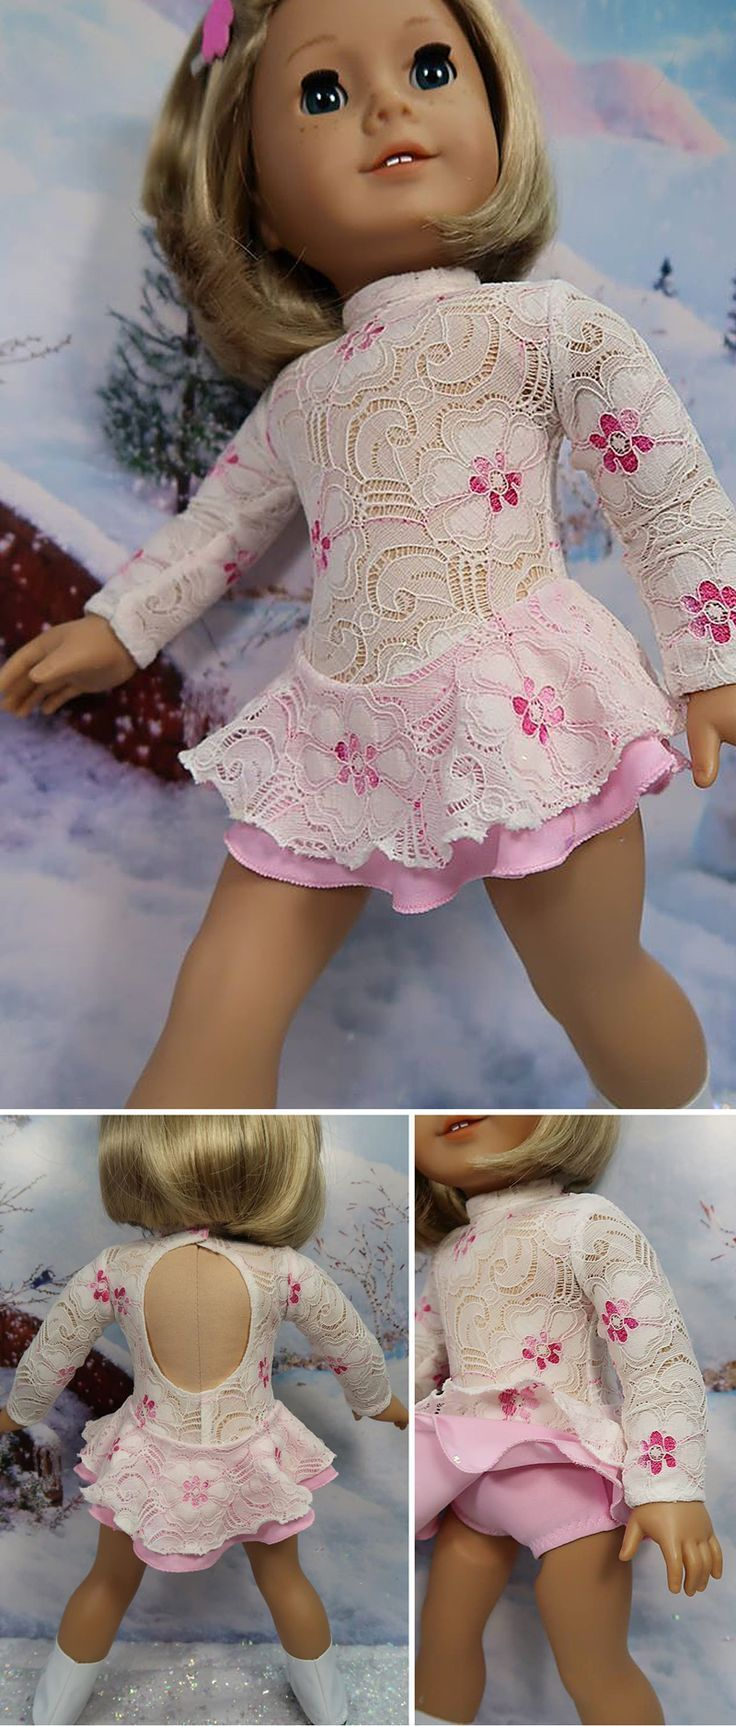 """Shirley F of DollClothesbyShirley made this beautiful lace figure skating dress for her American Girl doll using Lee & Pearl Pattern 1055: Skating Dresses for 18"""" Dolls. Find this delightful, just-like-the-real-thing pattern in our Etsy store at https://www.etsy.com/listing/179931138/lp-pattern-1055-skating-dresses-for-18"""